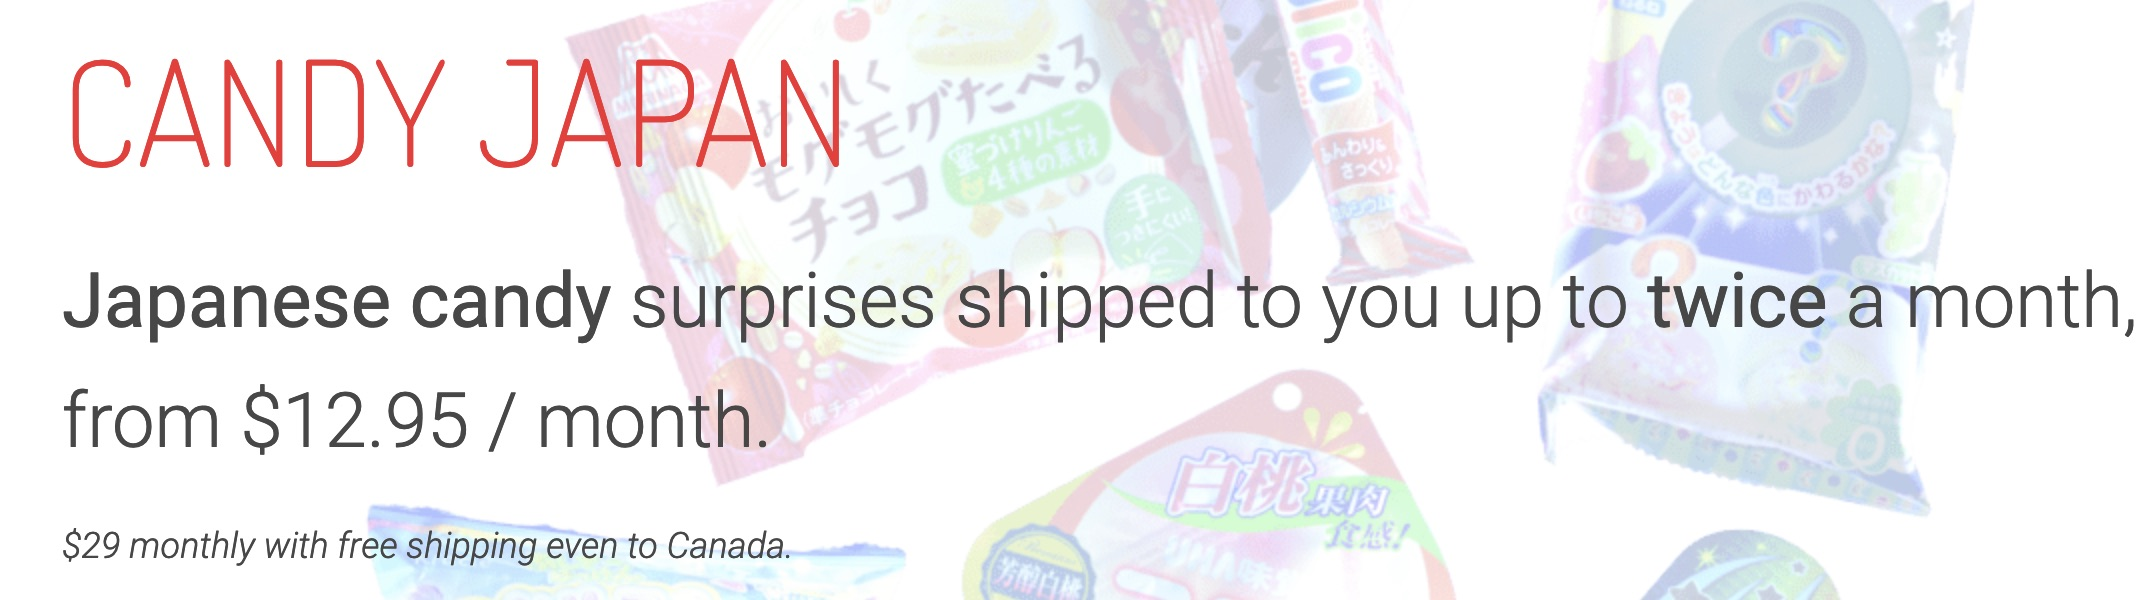 Candy Japan pricing and shipping in Canada